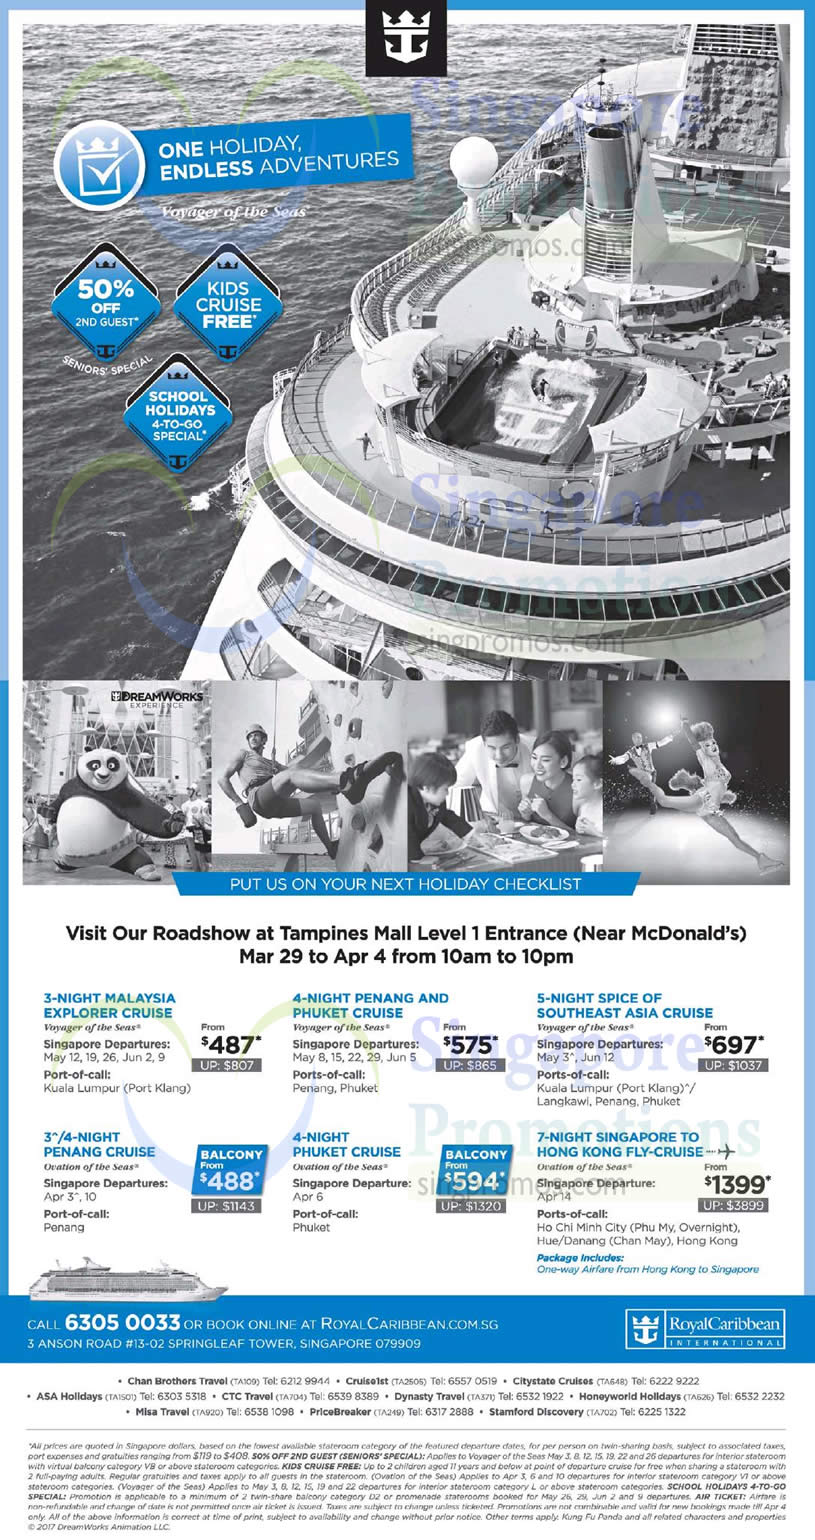 Royal Caribbean Roadshow At Tampines Mall Cruise From 487 From 29 Mar  4